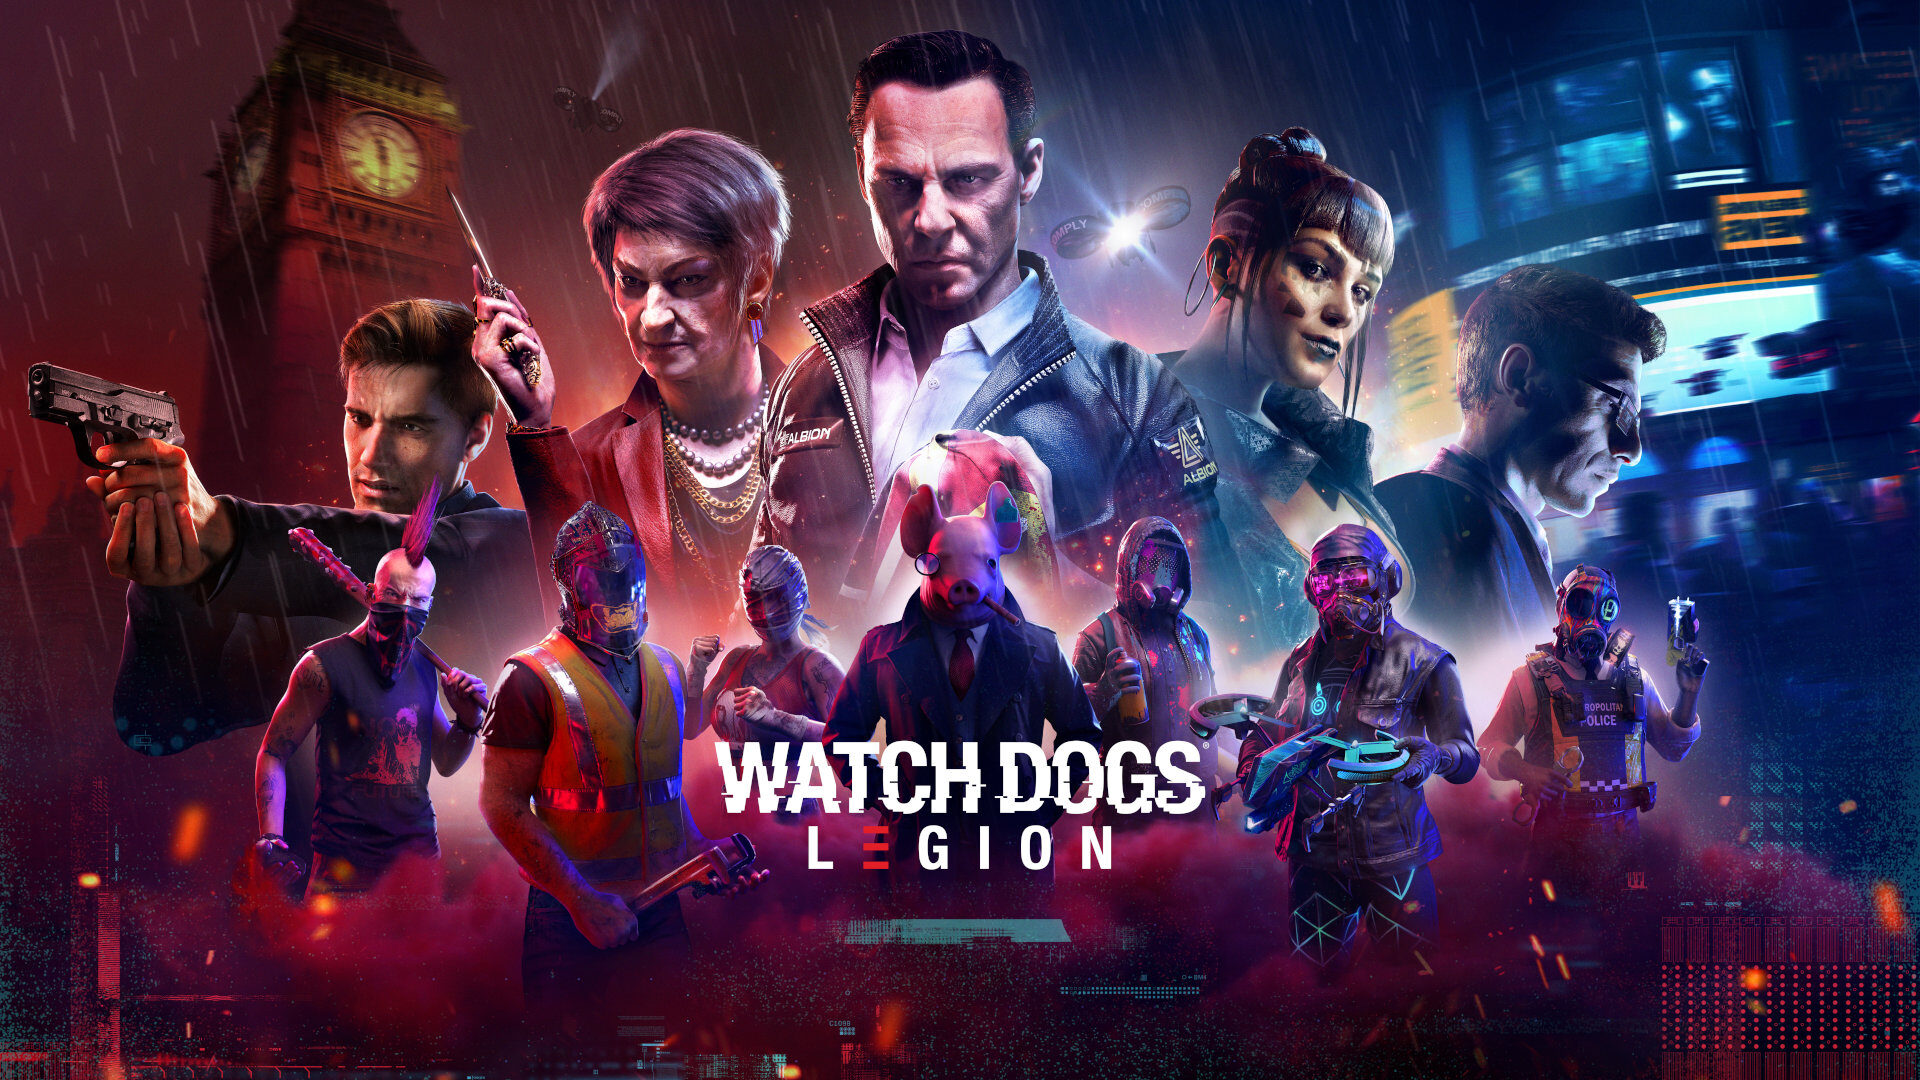 A threatening man with a gun, a woman with an evil grin, a stern looking middle-aged man, a moder emo-gothic lwoman smiling and a thoughtful man with glasses. Below a varied group of hackers with drones, fighters with clenched fists and a person at the center with a pig mask.